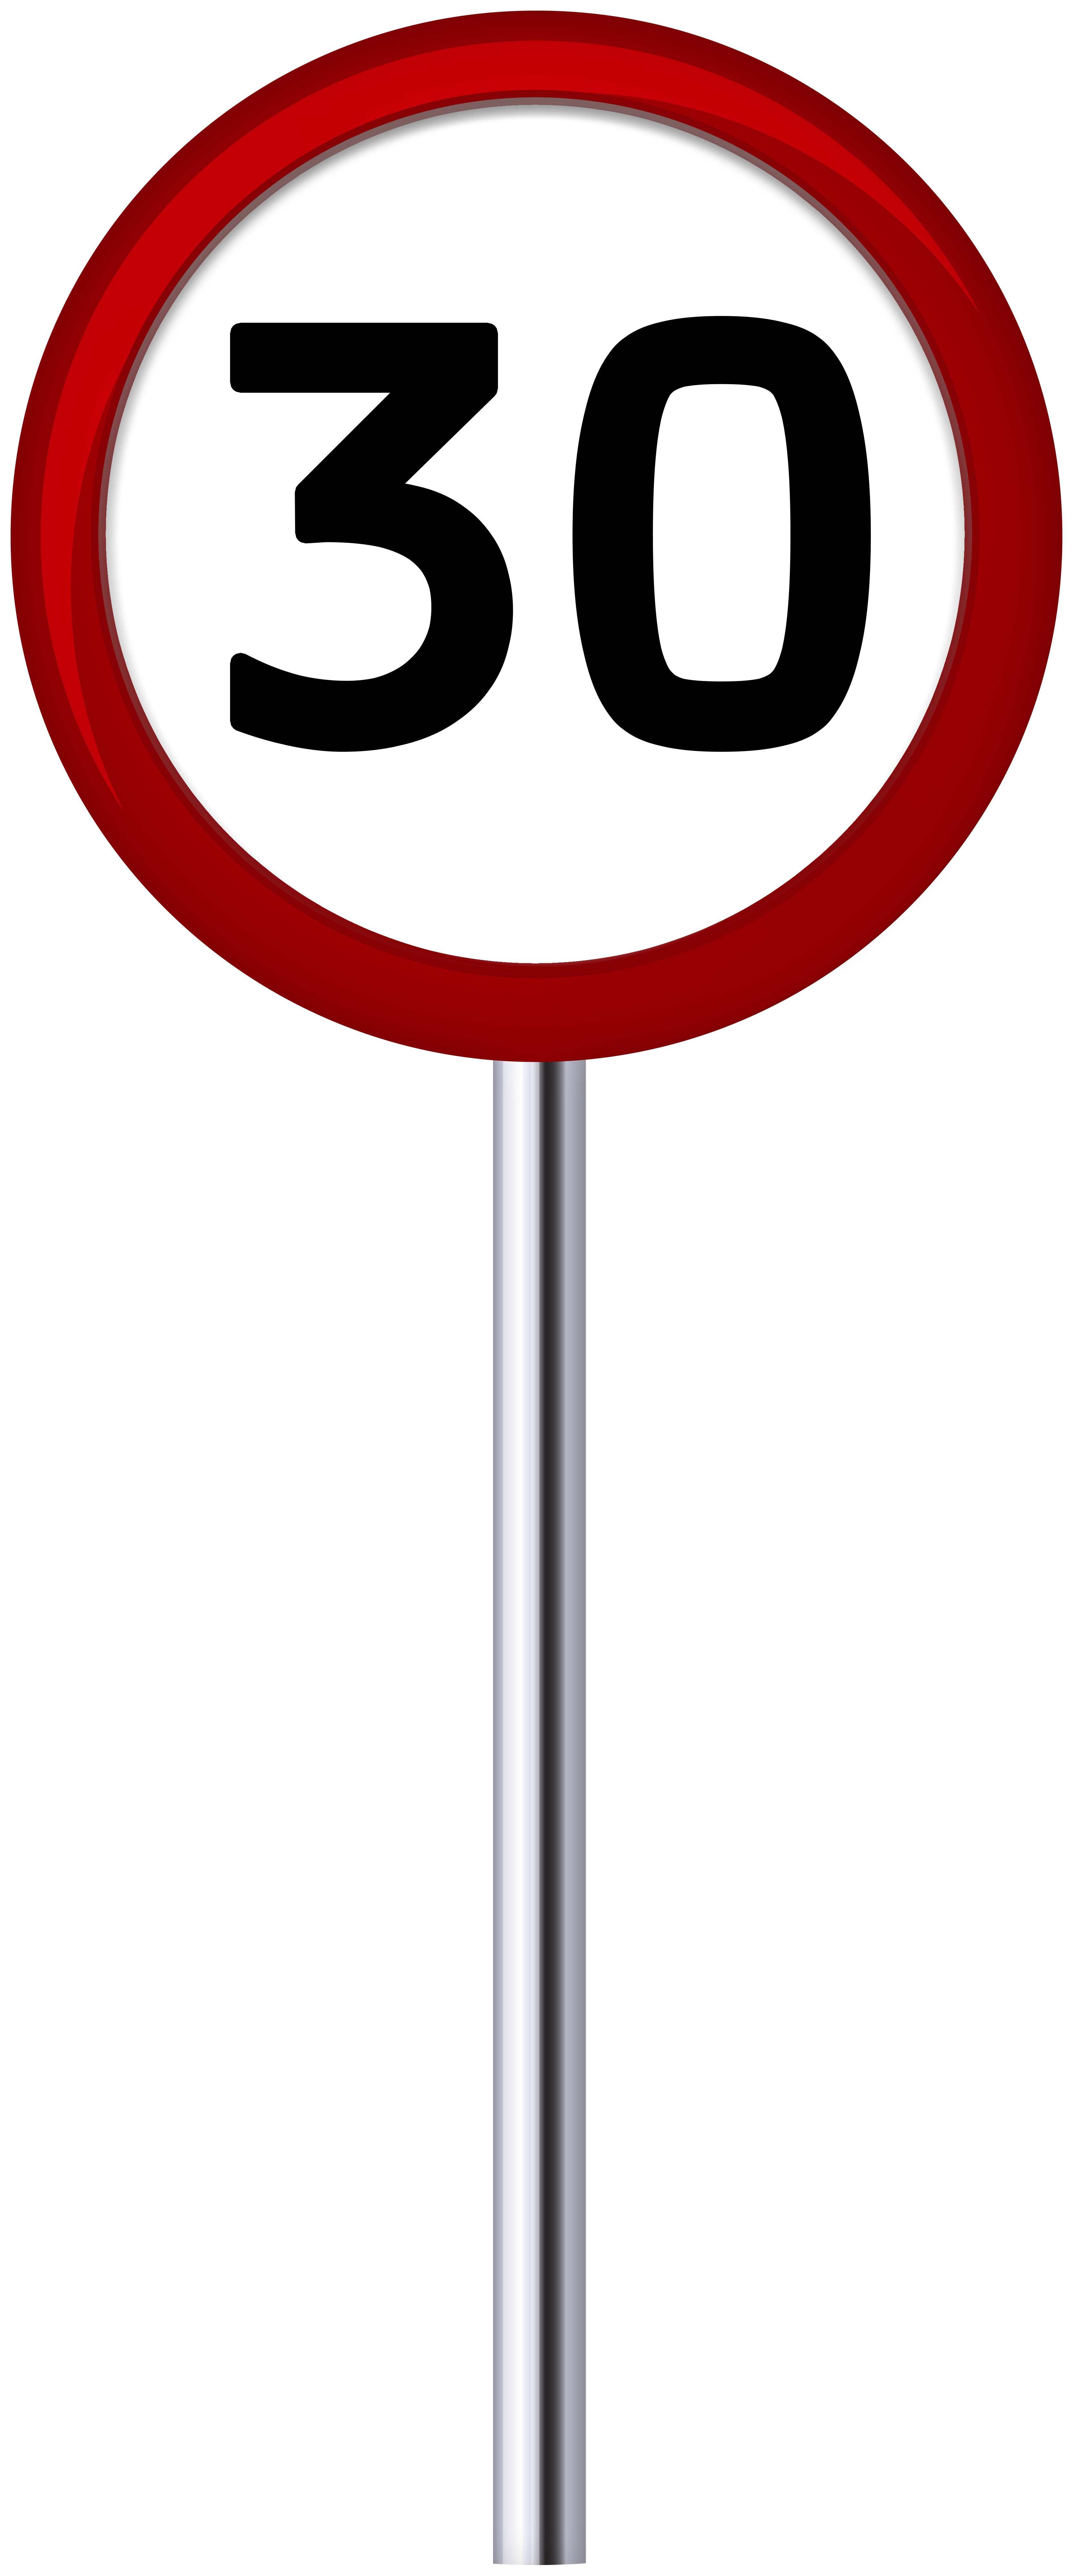 Fast clipart transparent. Traffic sign speed limit